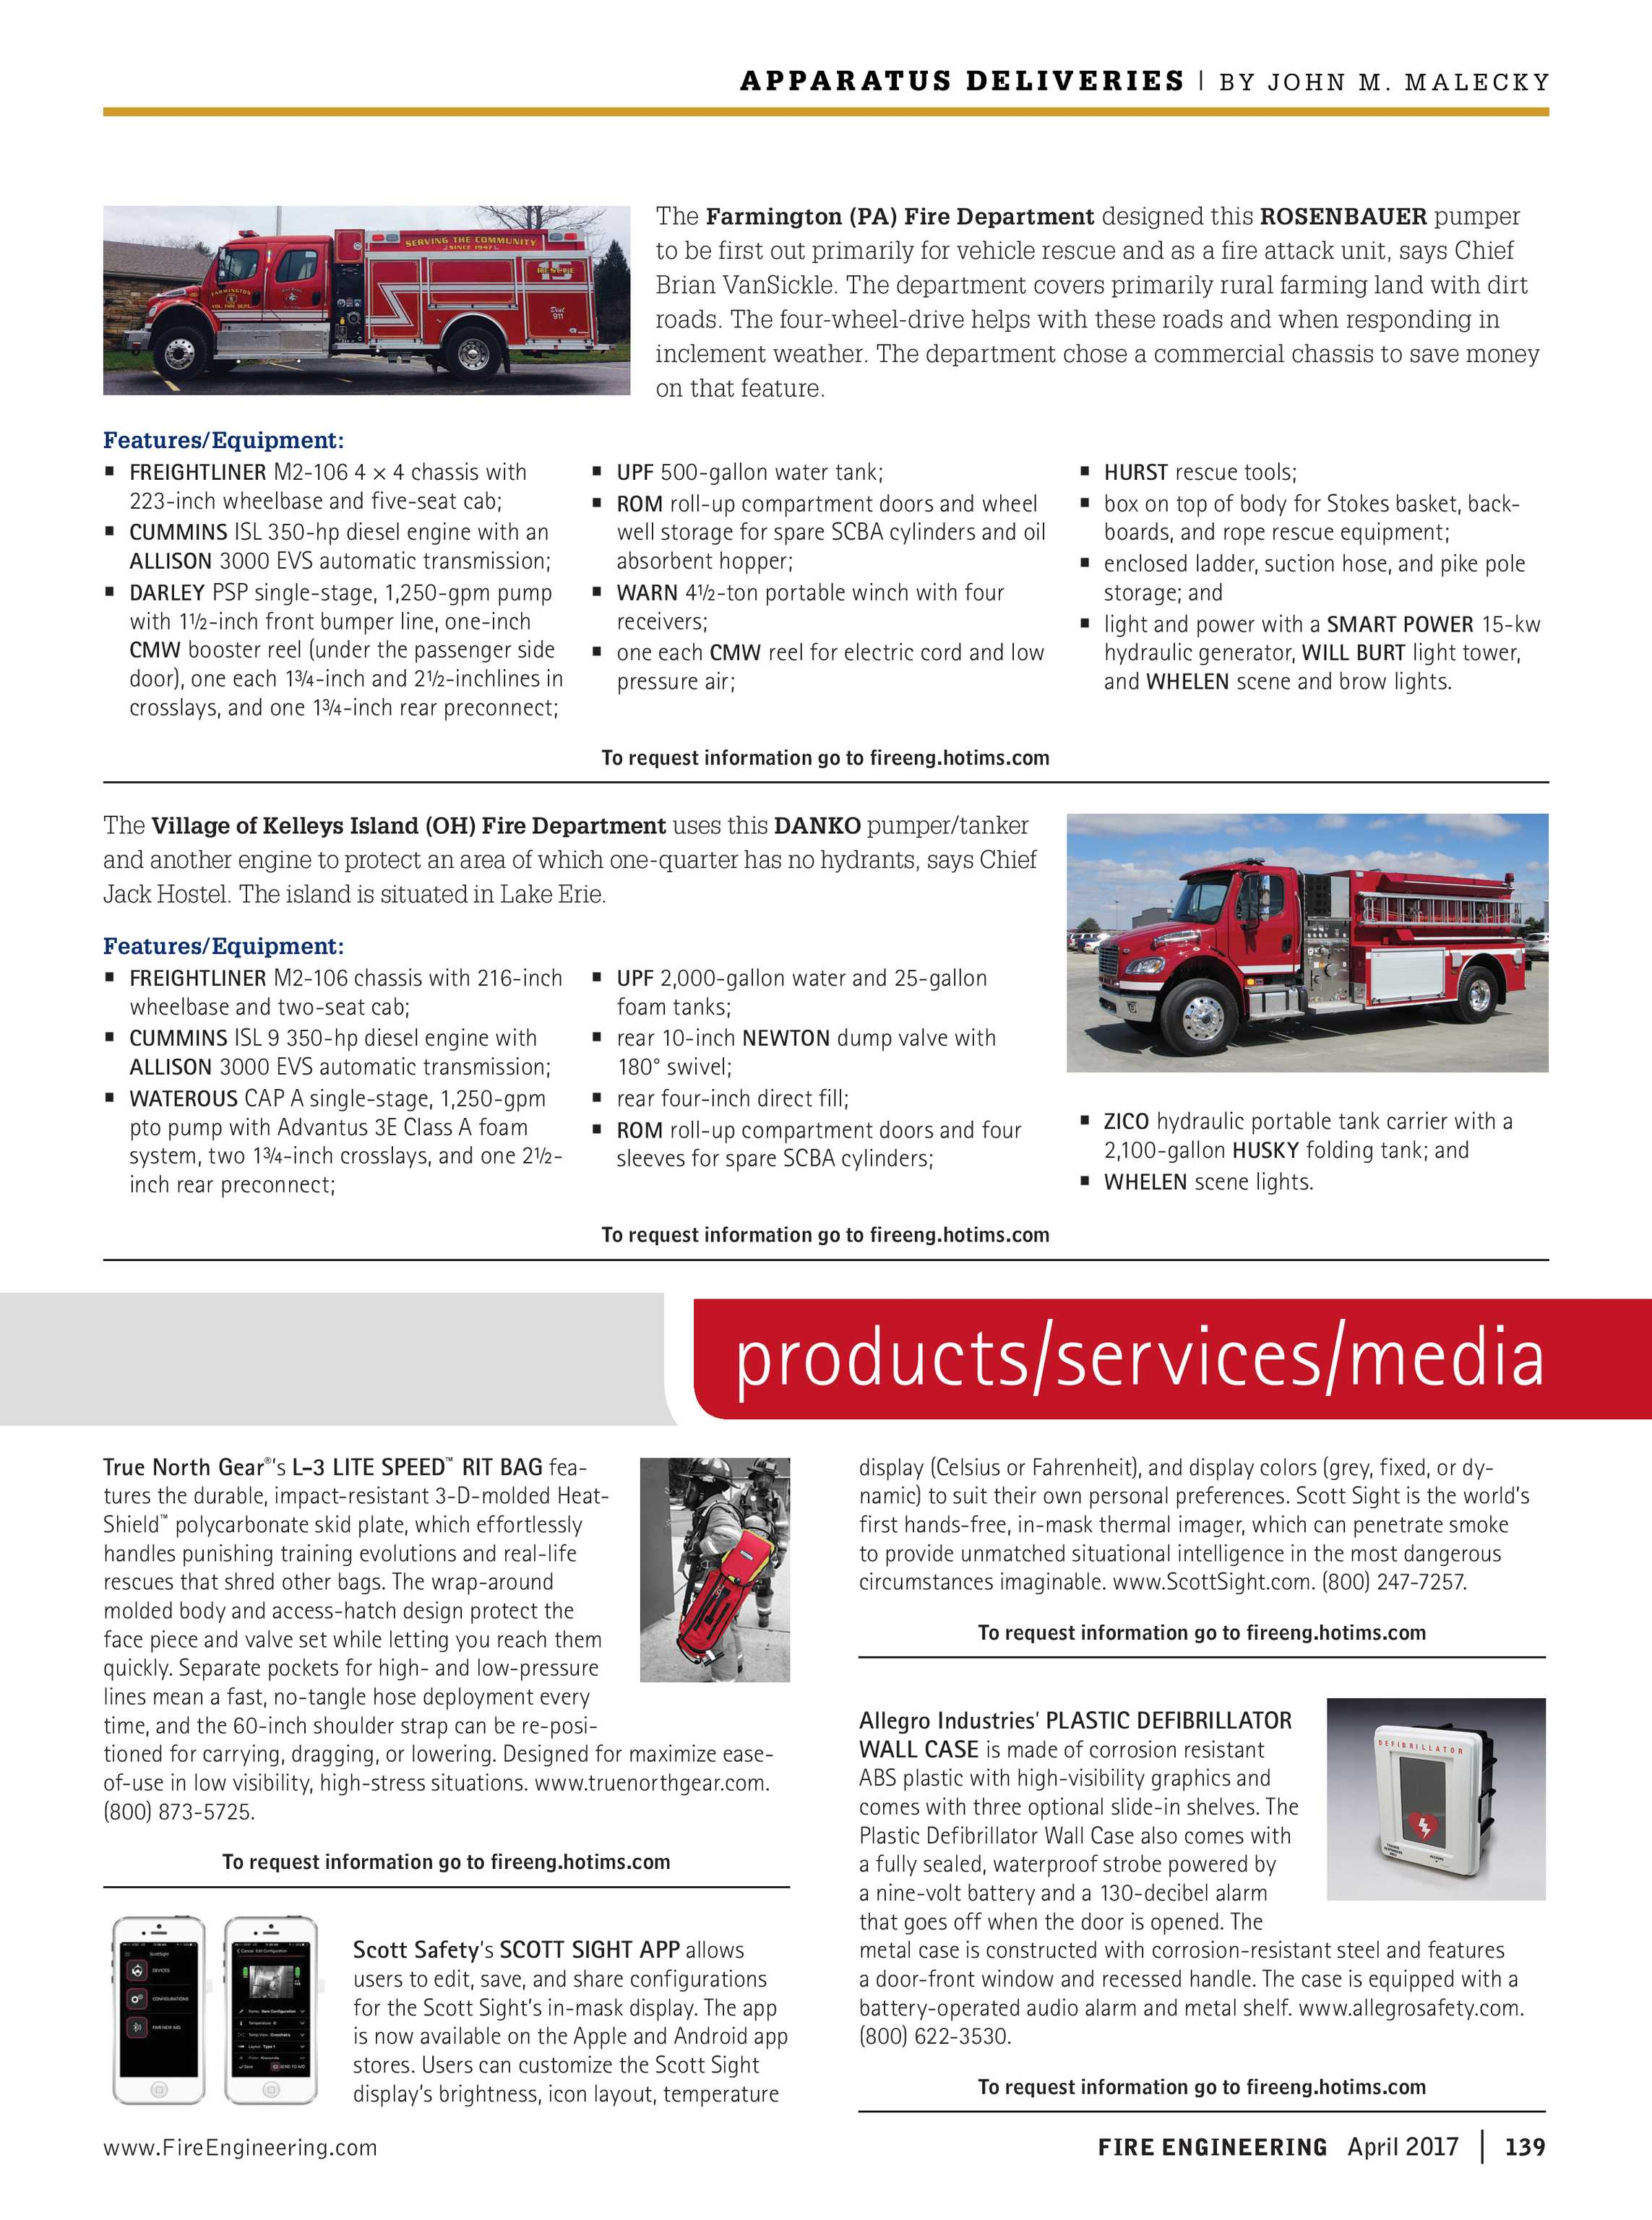 Fire Engineering - April 2017 - page 139